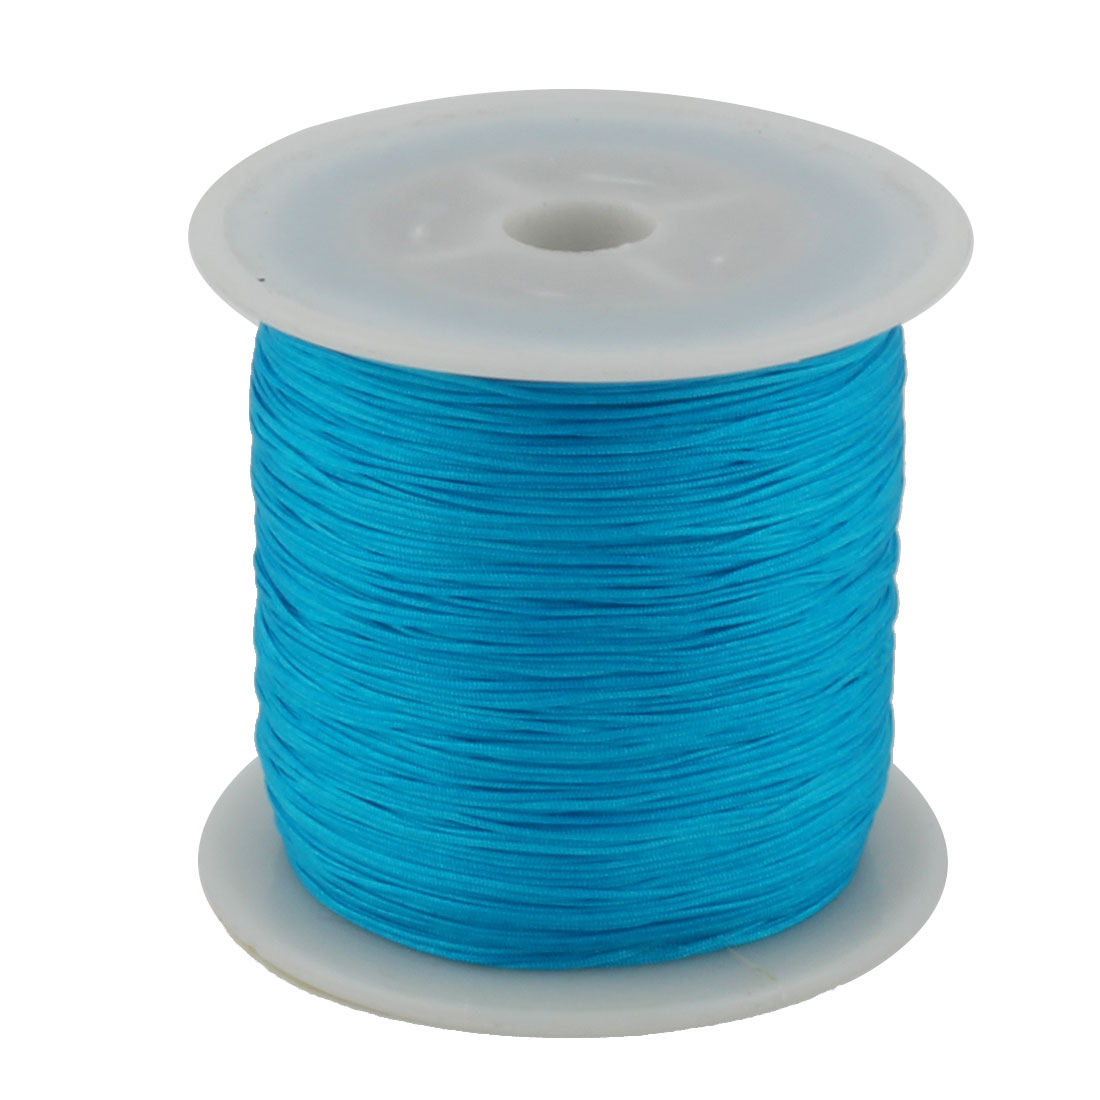 Nylon DIY Art Braided Beading Chinese Knot Cord String Roll Lake Blue 153 Yards